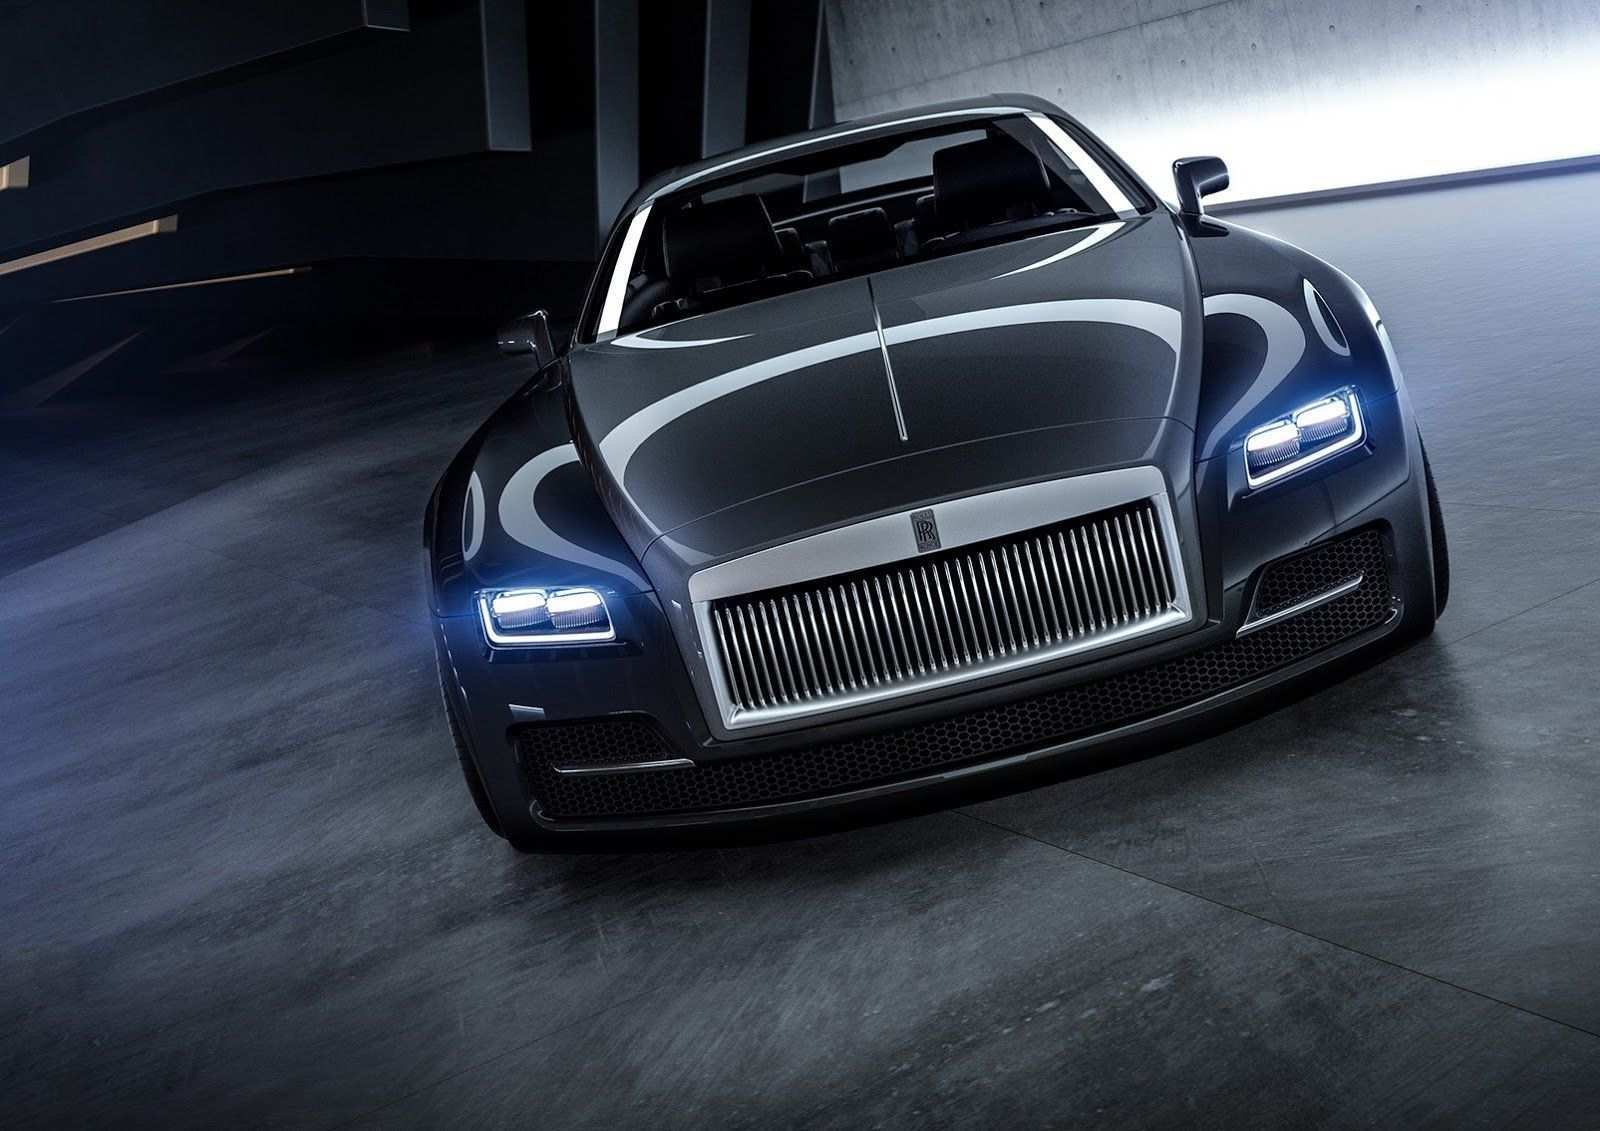 21 New 2020 Rolls Royce Phantoms Engine